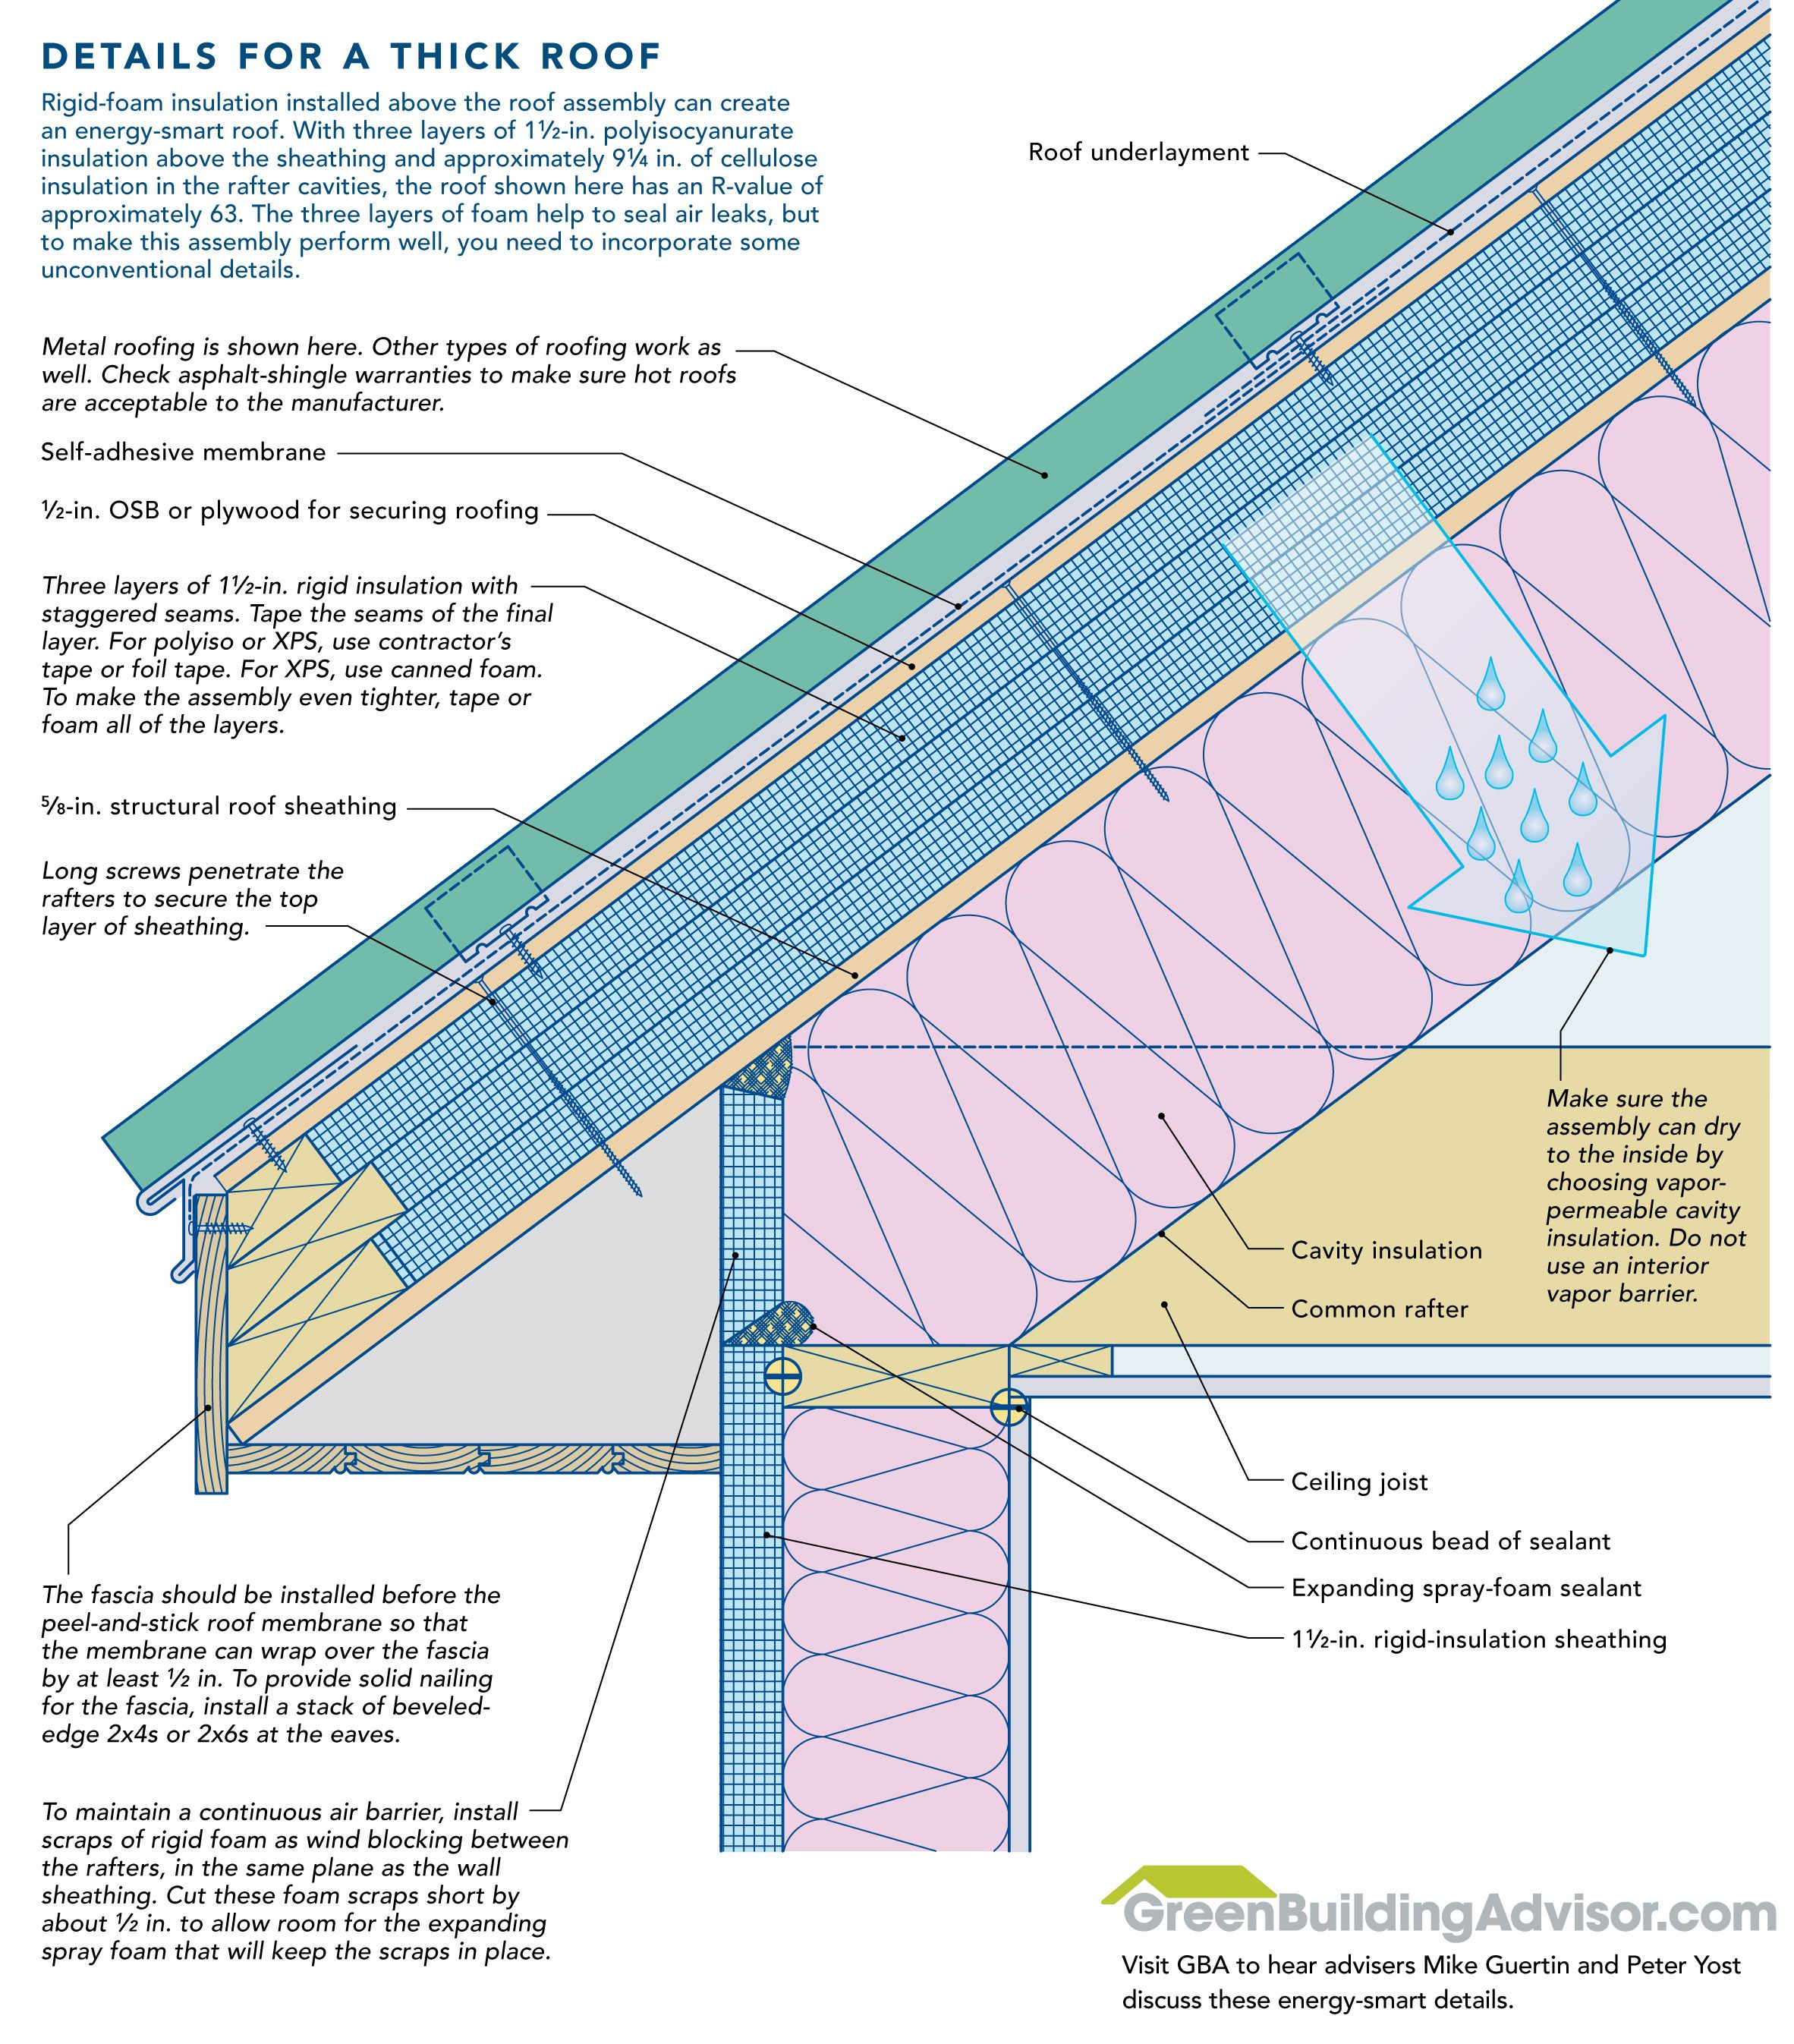 How To Install Rigid Foam On Top Of Roof Sheathing Roof Insulation Roof Sheathing Cathedral Ceiling